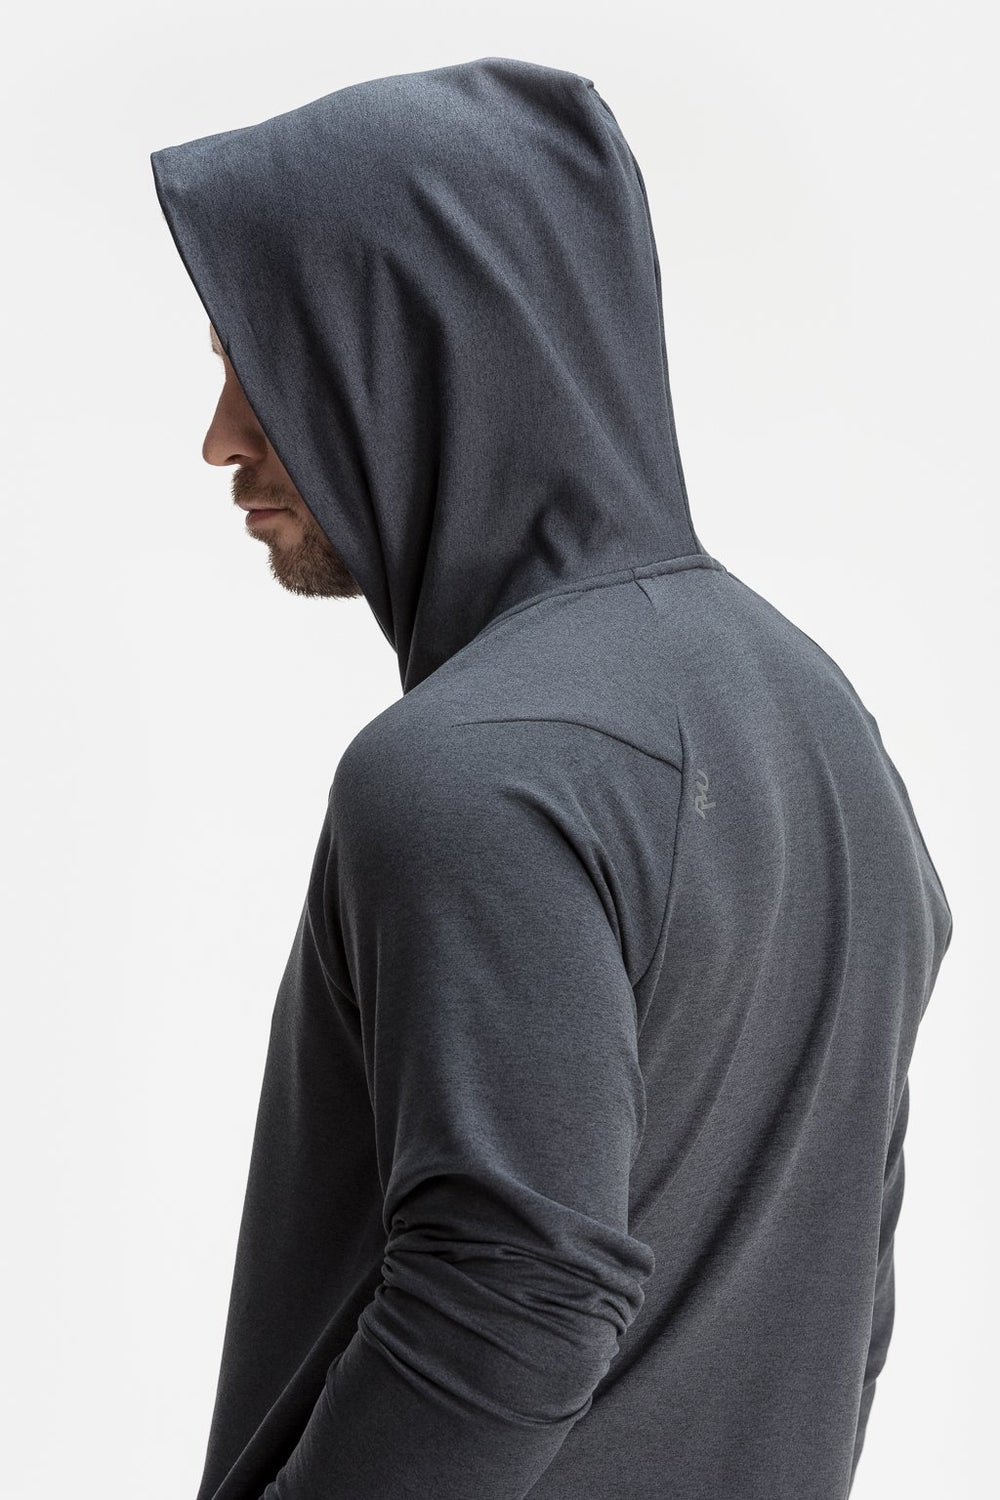 RYU Mens MidLayr Hoodie in Asphalt Heather